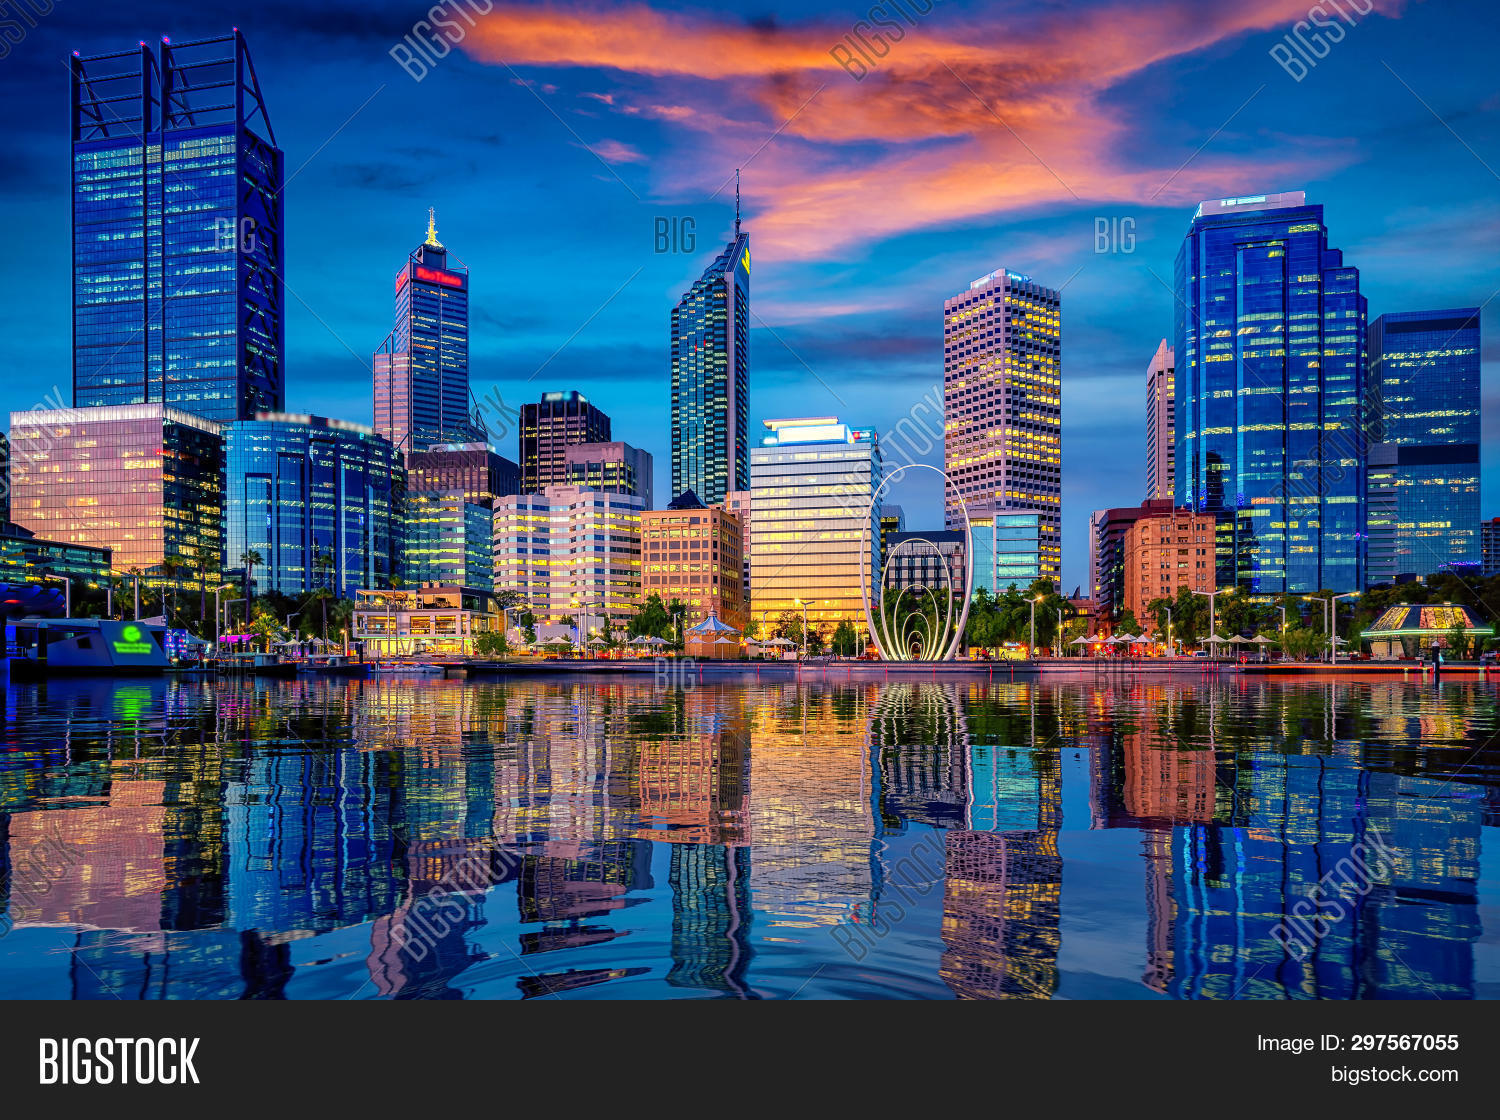 Sunset In Perth City With Building And River , Perth, Australia. This Image Can Use For Travel, City